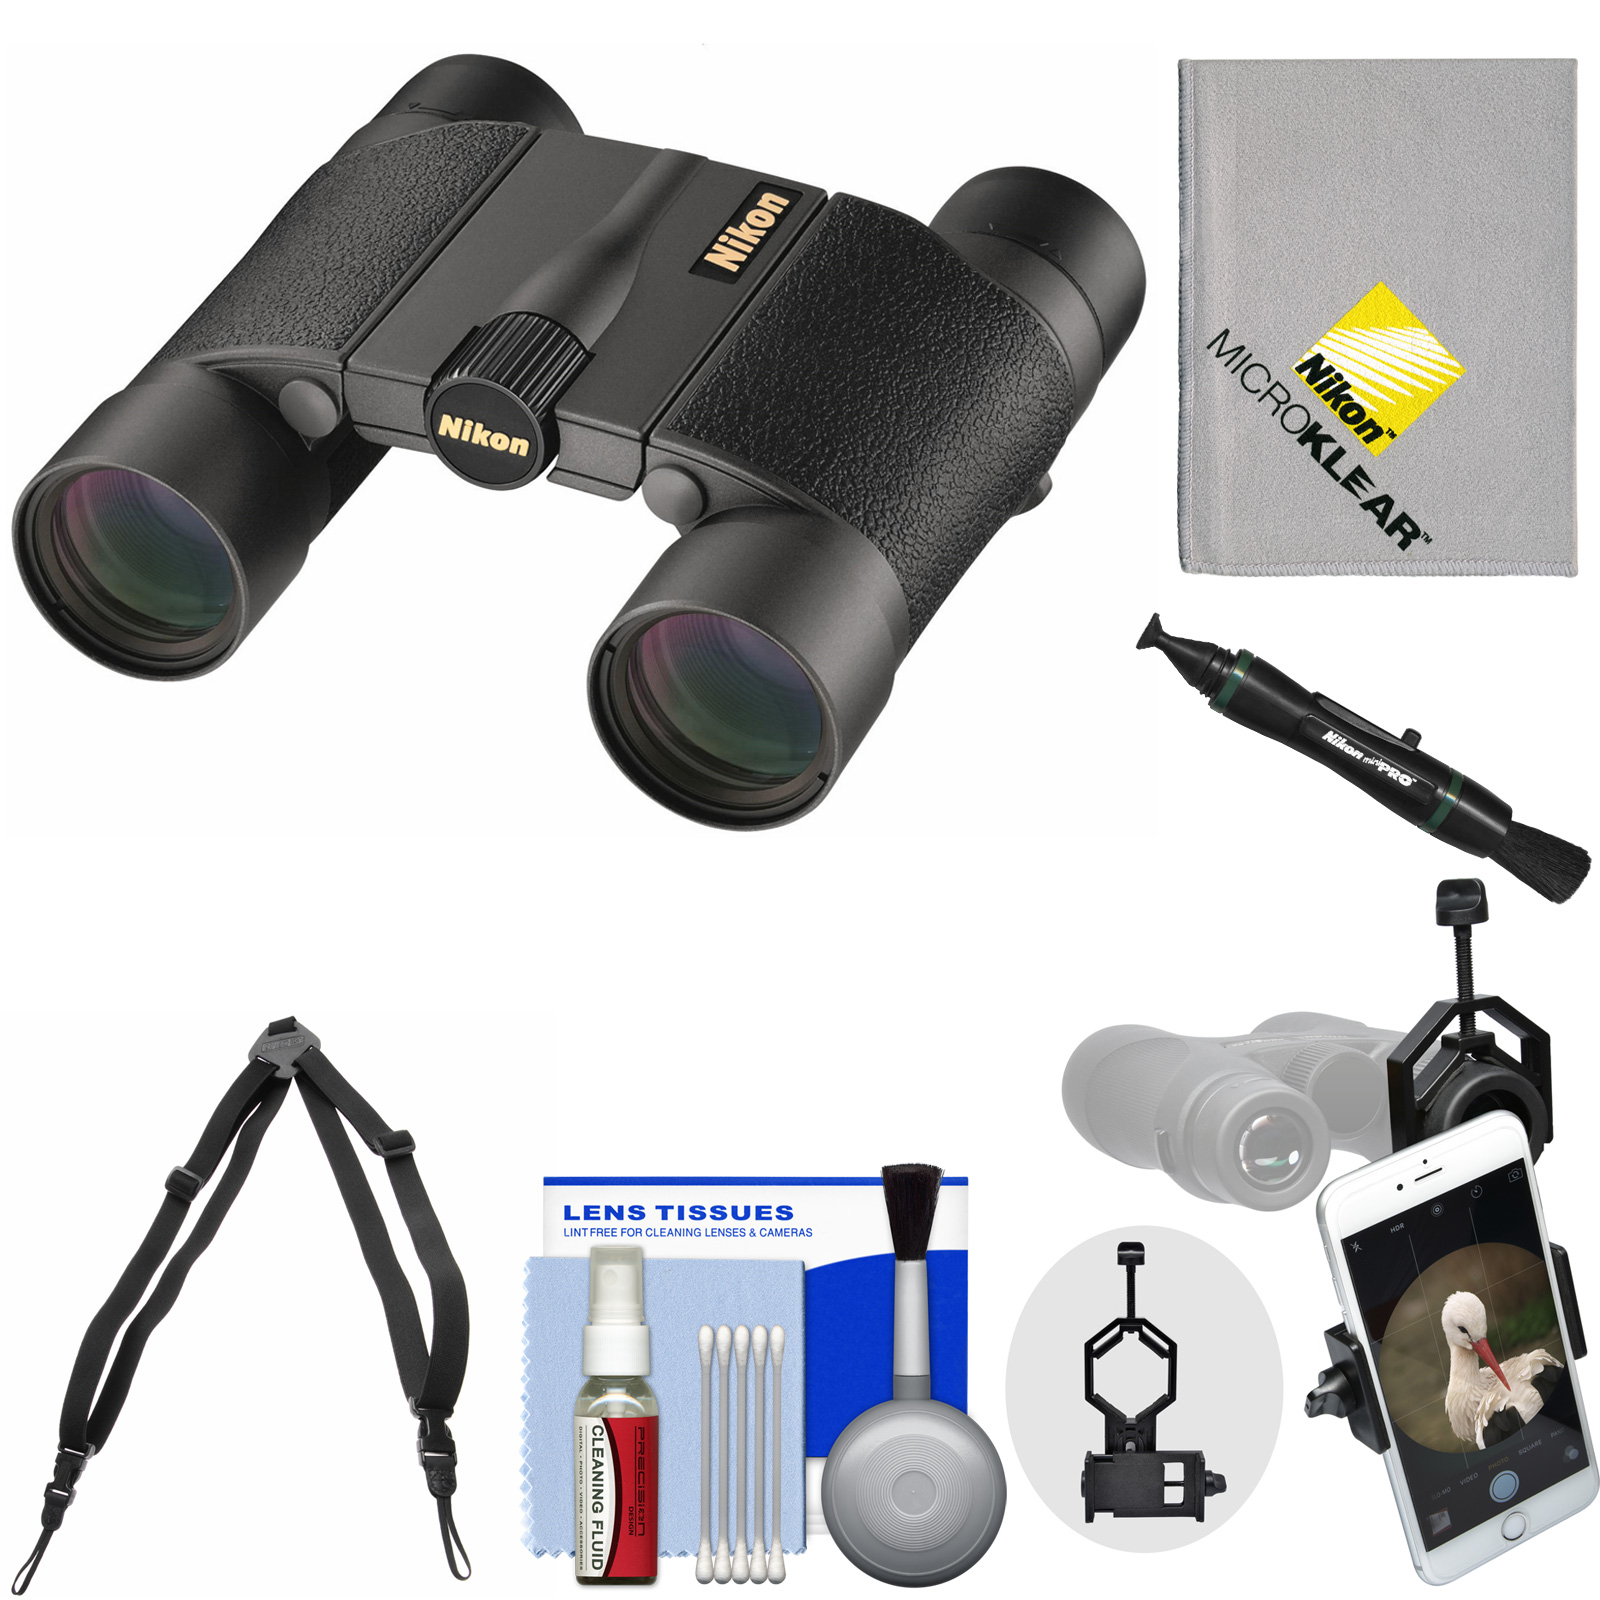 Nikon Premier LX L 10x25 Waterproof / Fogproof Binoculars with Case   Harness   Smartphone Adapter   Cleaning Kit